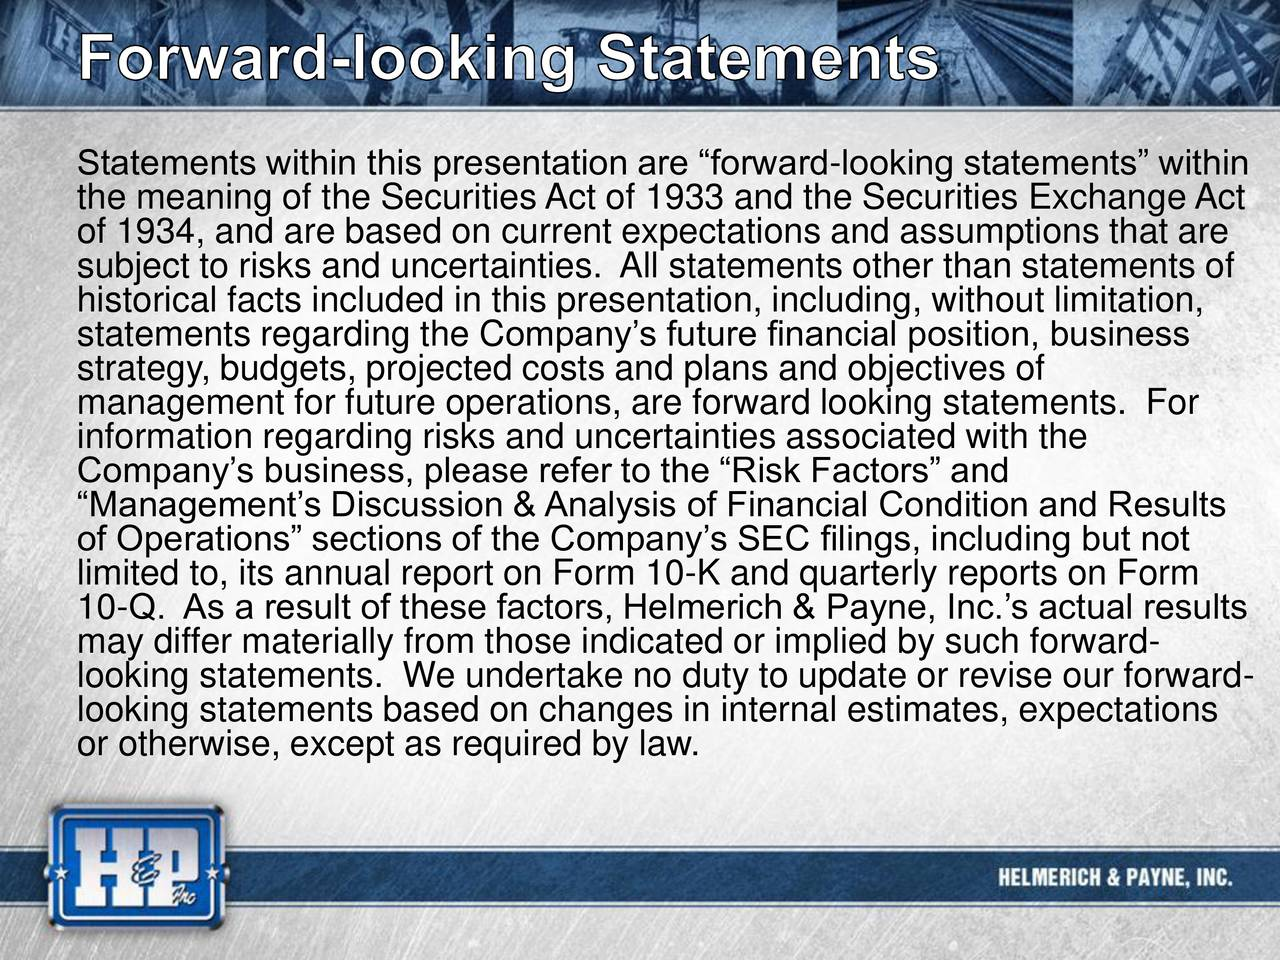 the meaning of the Securities Act of 1933 and the Securities Exchange Act of 1934, and are based on current expectations and assumptions that are subject to risks and uncertainties. All statements other than statements of historical facts included in this presentation, including, without limitation, statements regarding the Companys future financial position, business strategy, budgets, projected costs and plans and objectives of management for future operations, are forward looking statements. For information regarding risks and uncertainties associated with the Companys business, please refer to the Risk Factors and of Operations sections of the Companys SEC filings, including but not limited to, its annual report on Form 10-K and quarterly reports on Form 10-Q. As a result of these factors, Helmerich & Payne, Inc.s actual results may differ materially from those indicated or implied by such forward- looking statements. We undertake no duty to update or revise our forward- looking statements based on changes in internal estimates, expectations or otherwise, except as required by law.